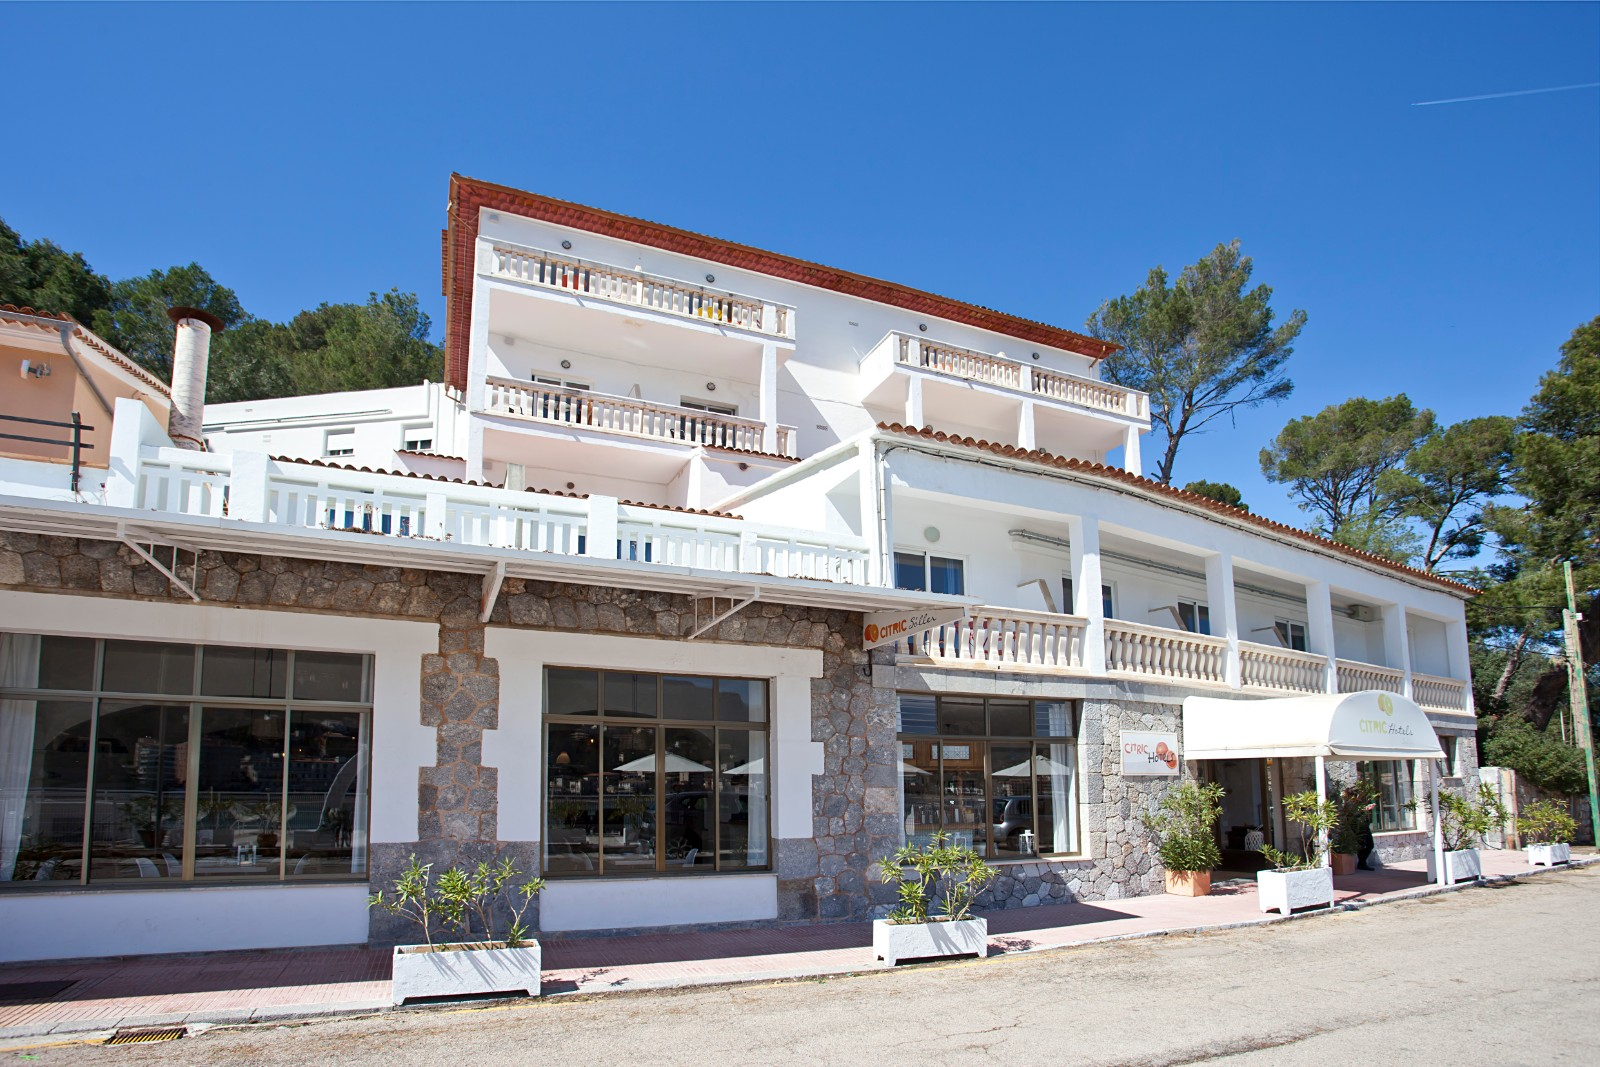 Citric Hotel Soller Front View